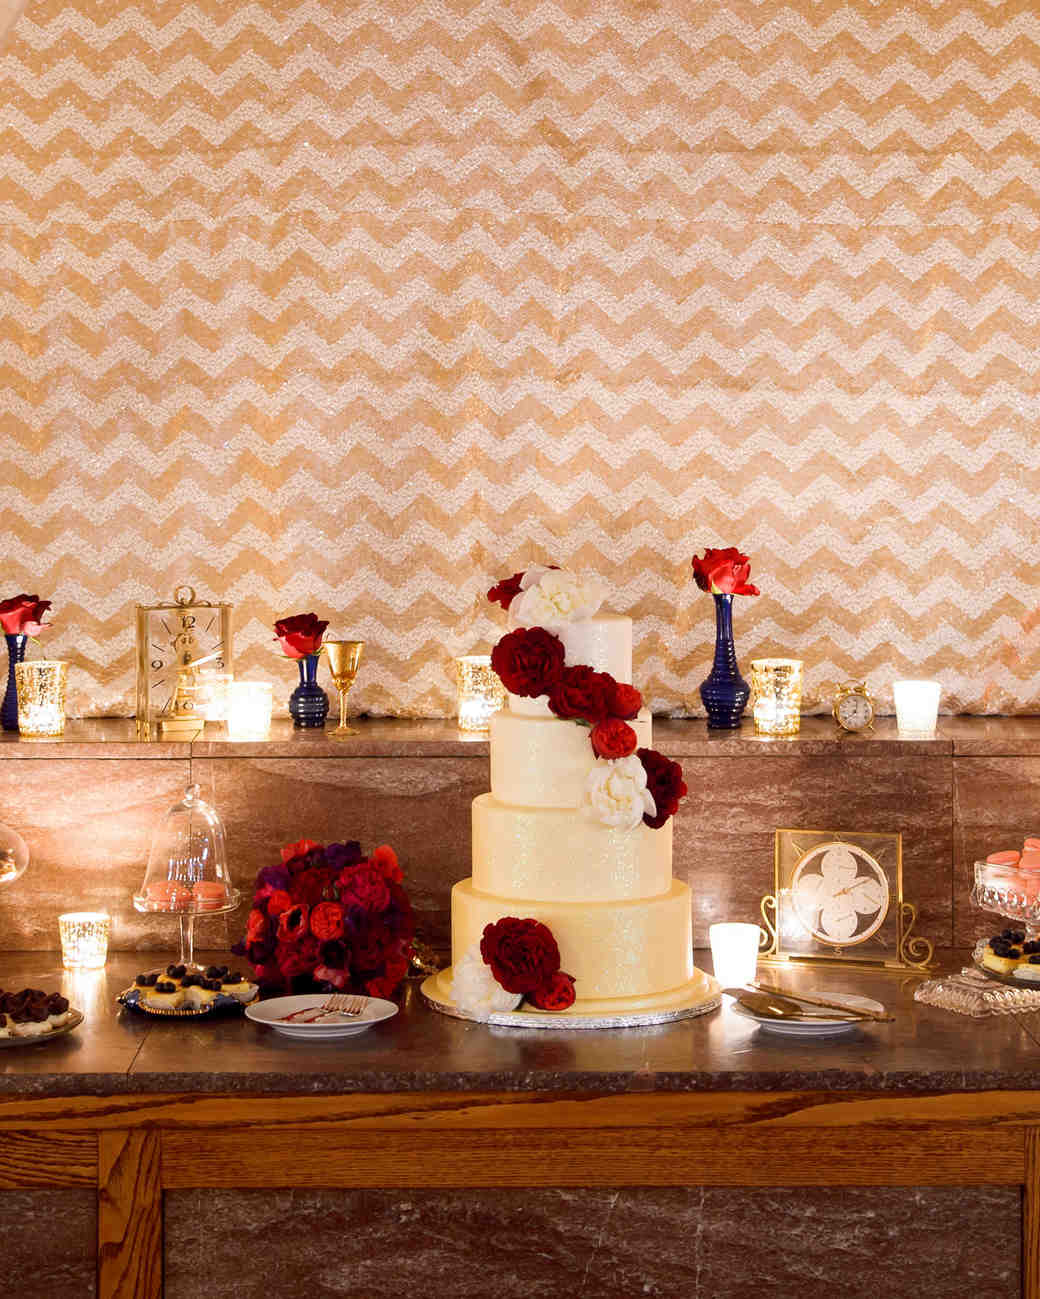 Red Dessert Table For Weddings: 11 Of The Most Decadent Desserts For A Winter Wedding